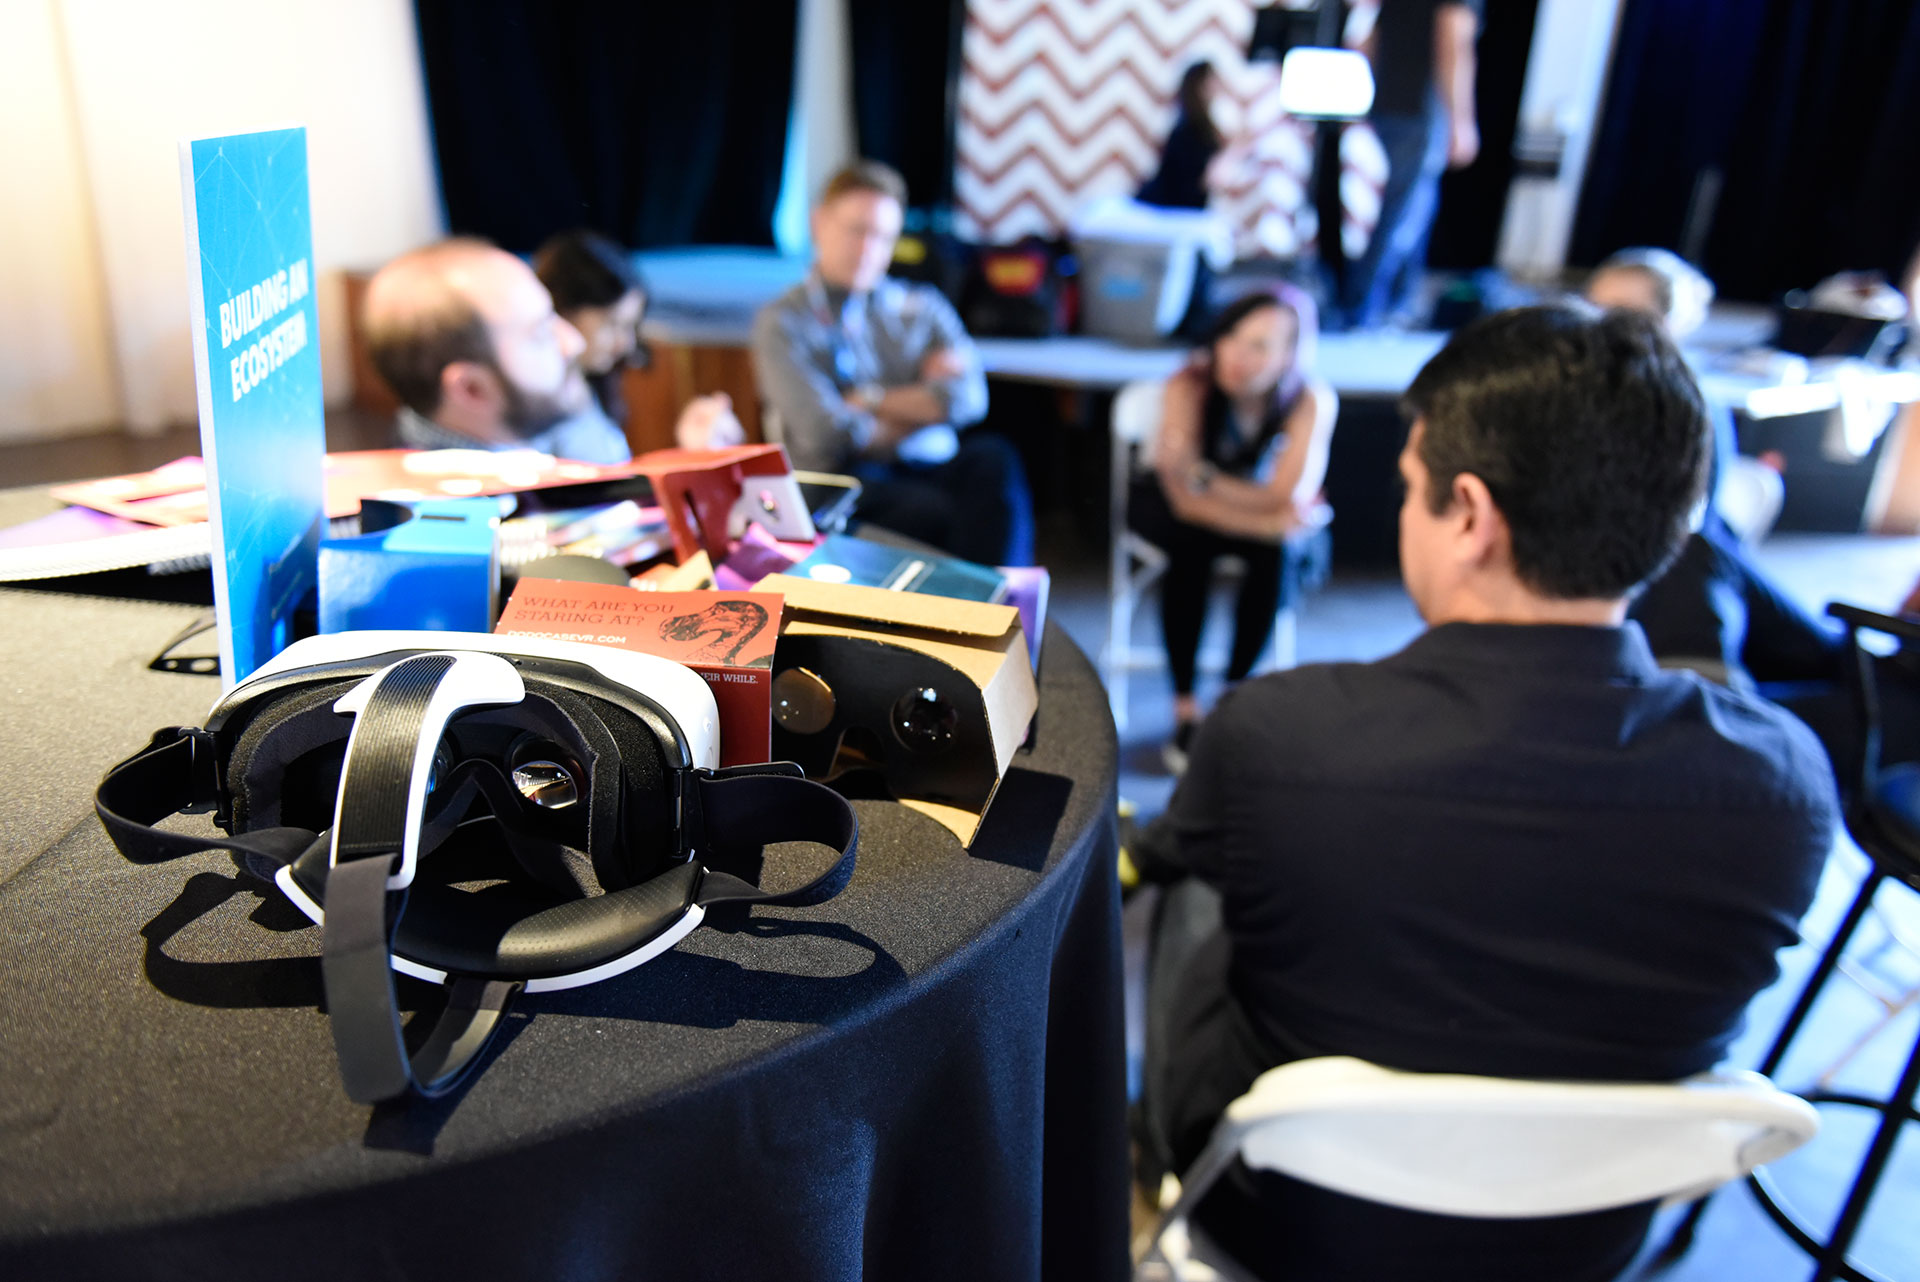 Knight gathers journalists, technologists and filmmakers at SXSW to explore trends and opportunities in virtual reality